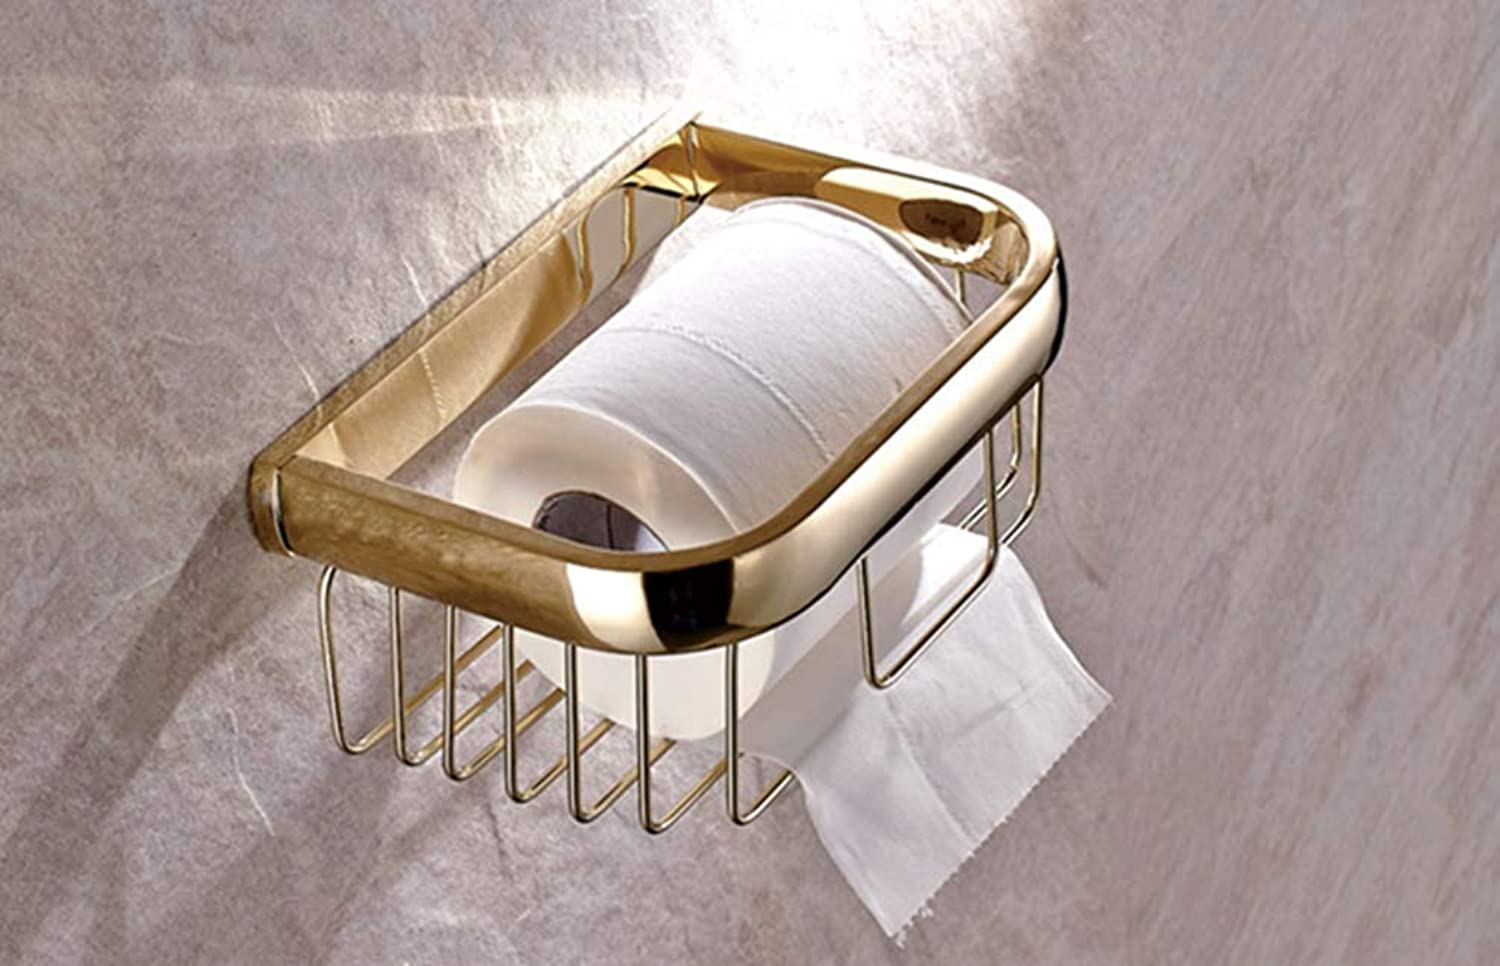 LUDSUY Bathroom Accessories Luxury Polished gold color Brass Square Wall Mounted Bathroom Toilet Paper Roll Basket Holder Bathroom Accessory